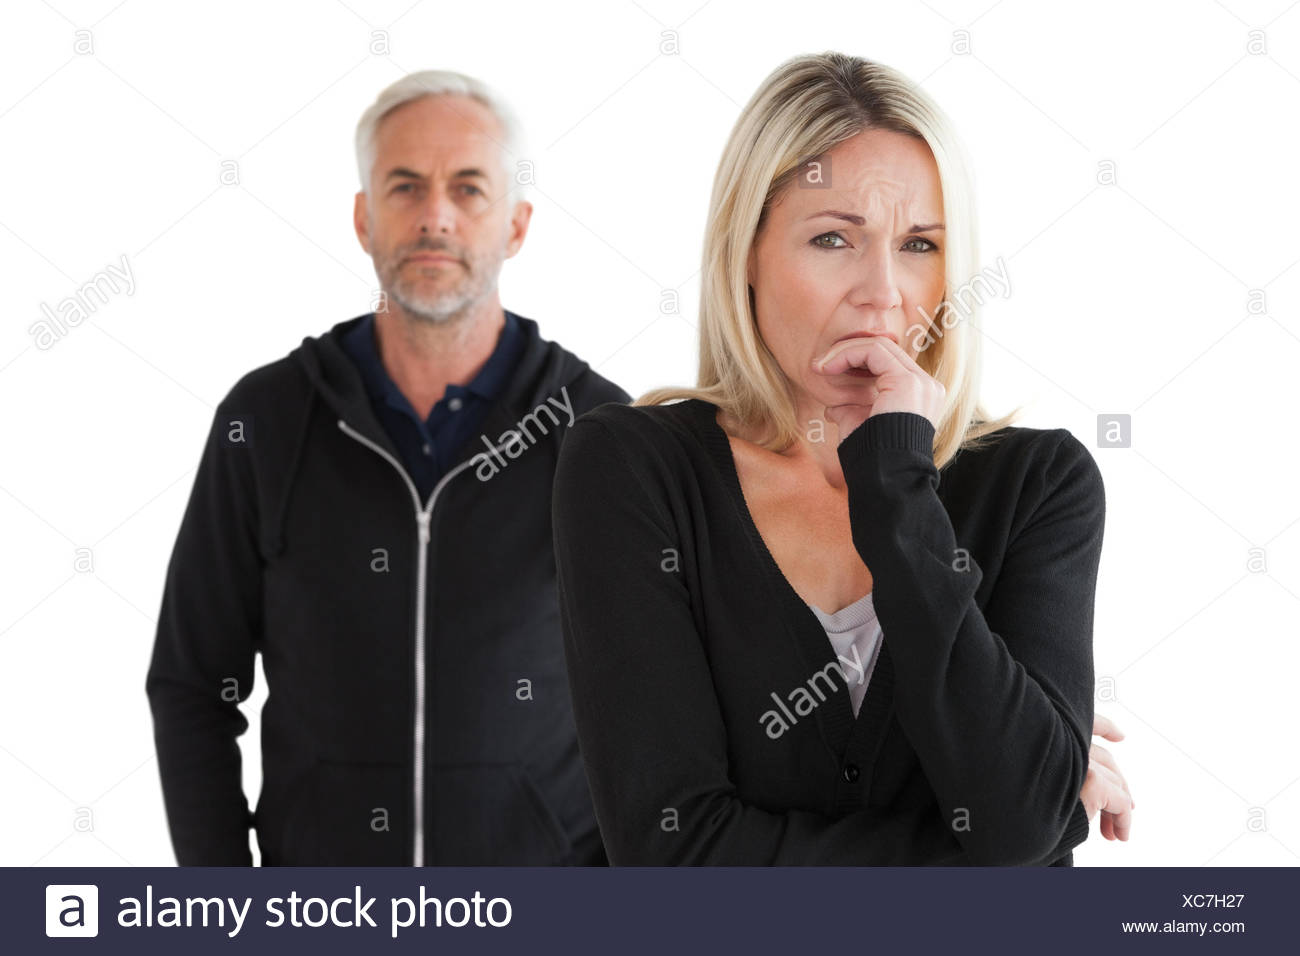 Mature couple having relationship problems - Stock Image